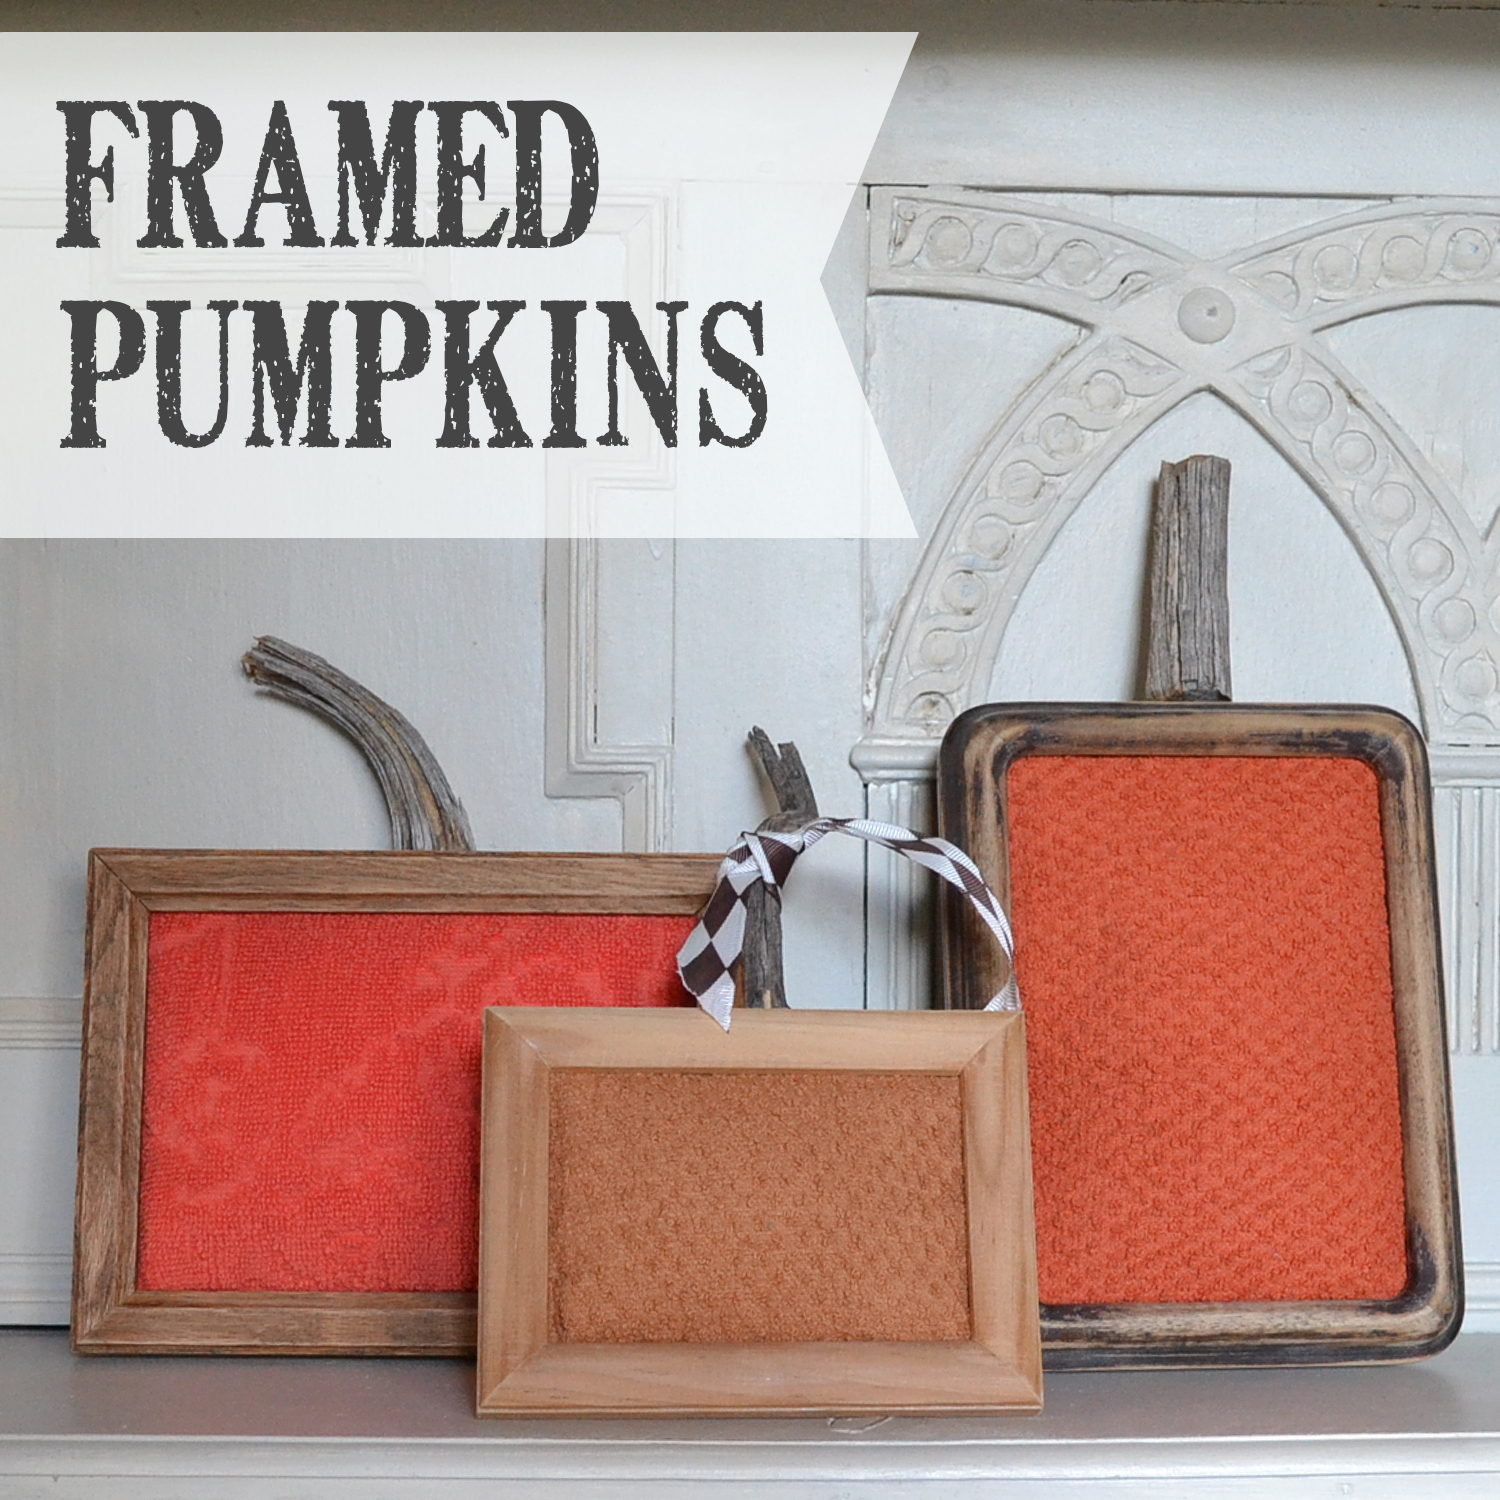 framed-pumpkins-large-text-country-design-style